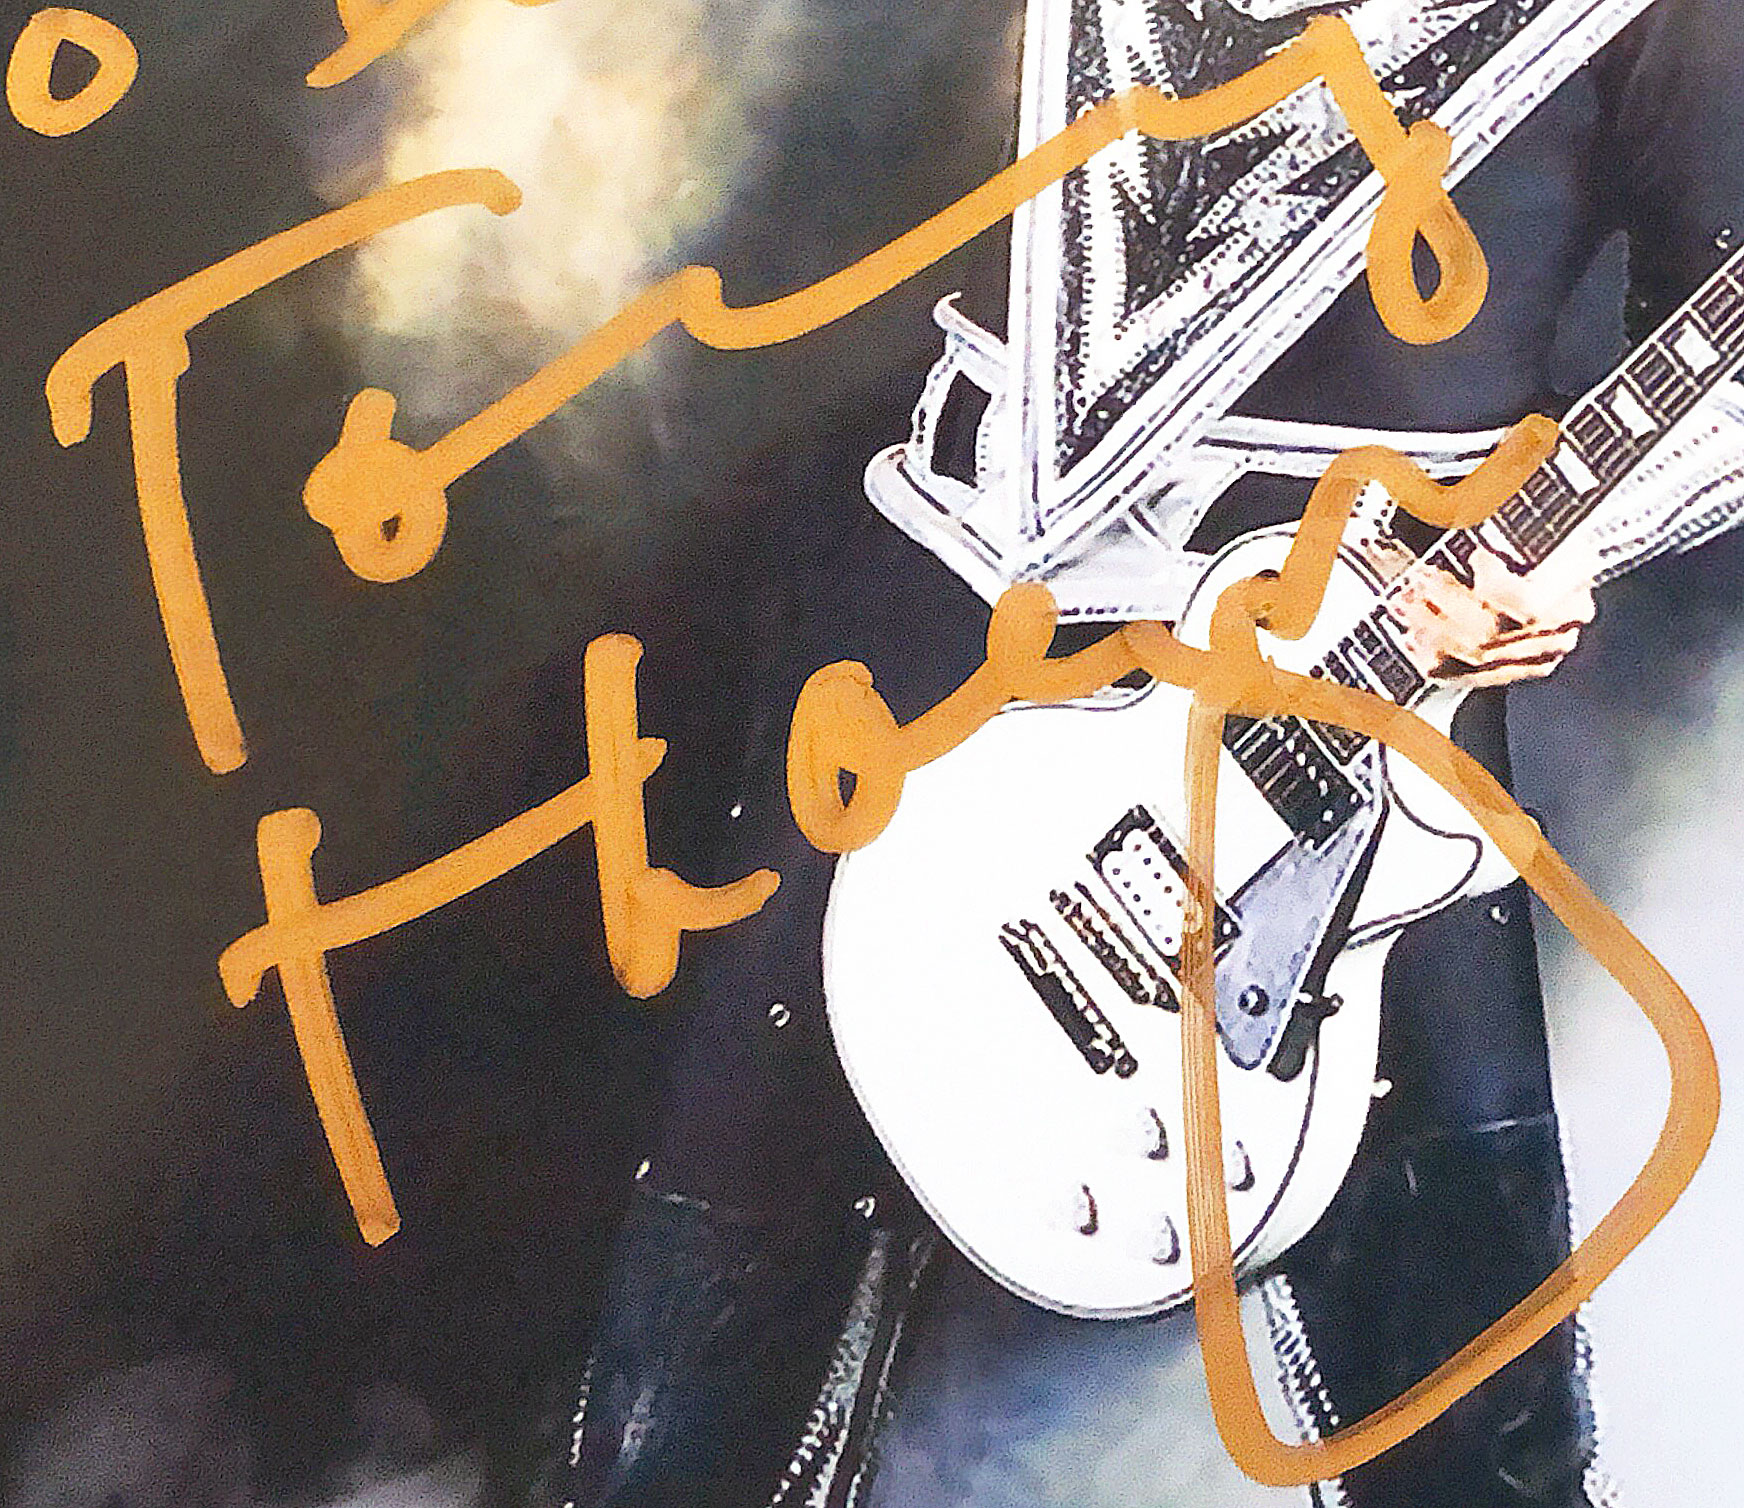 KISS: Tommy Thayer Lead Guitar Autograph by Mail